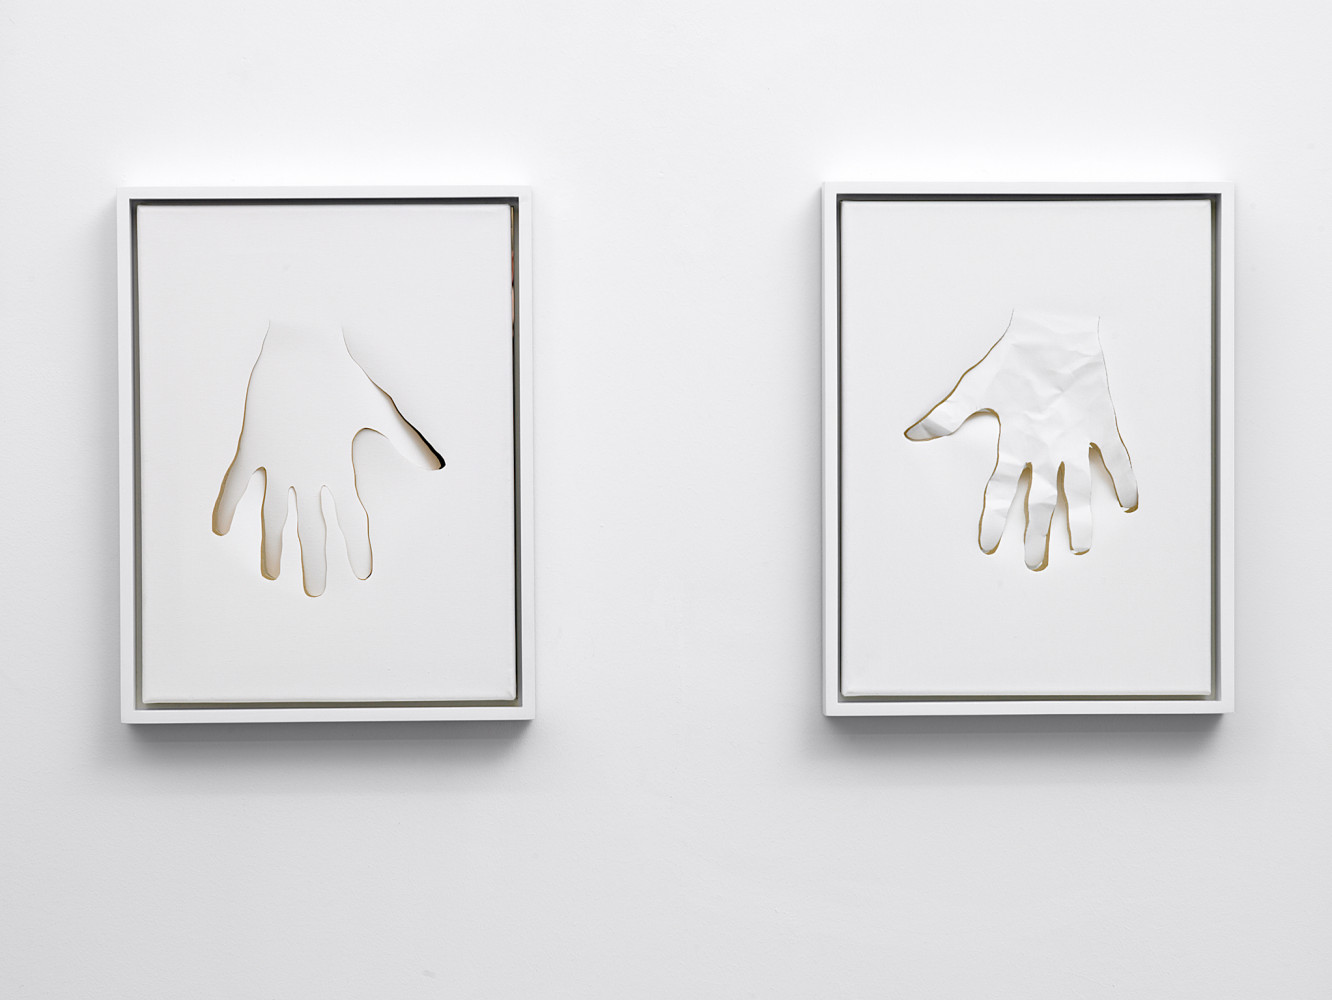 'ROCK PAPER SCISSORS – curated by Jon Wood, Henry Moore Institute, Leeds', Installation view